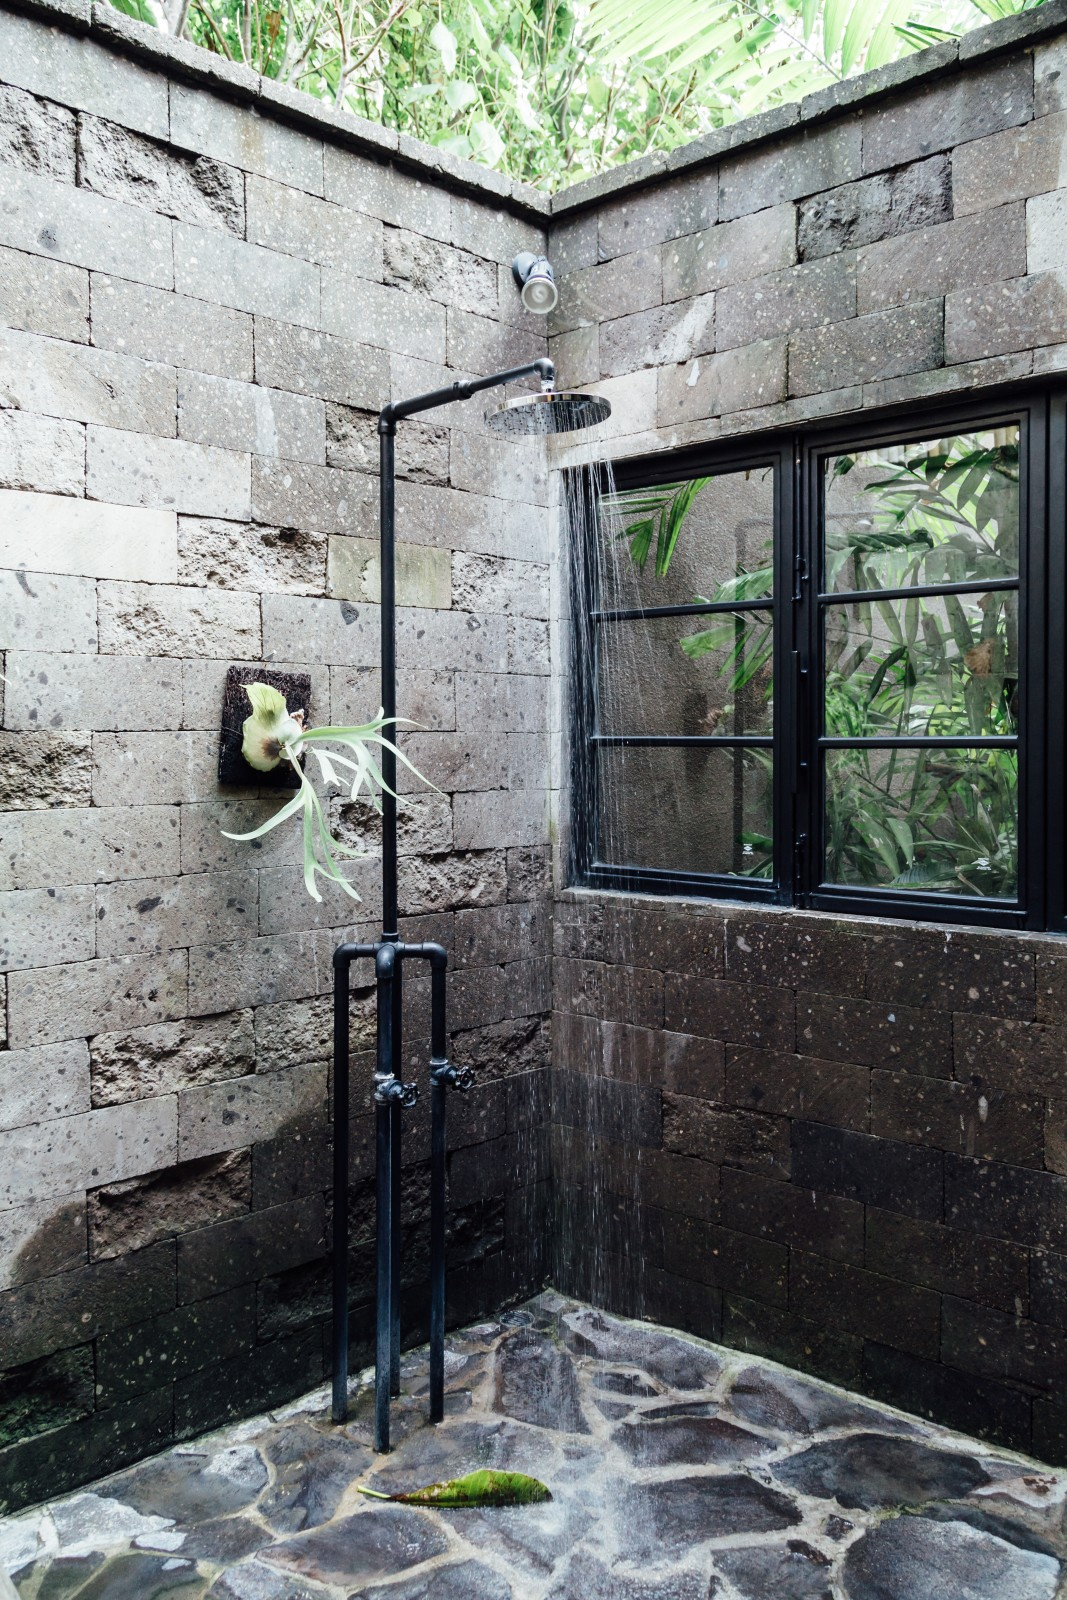 Good Clean Fun: How to Build an Outdoor Shower